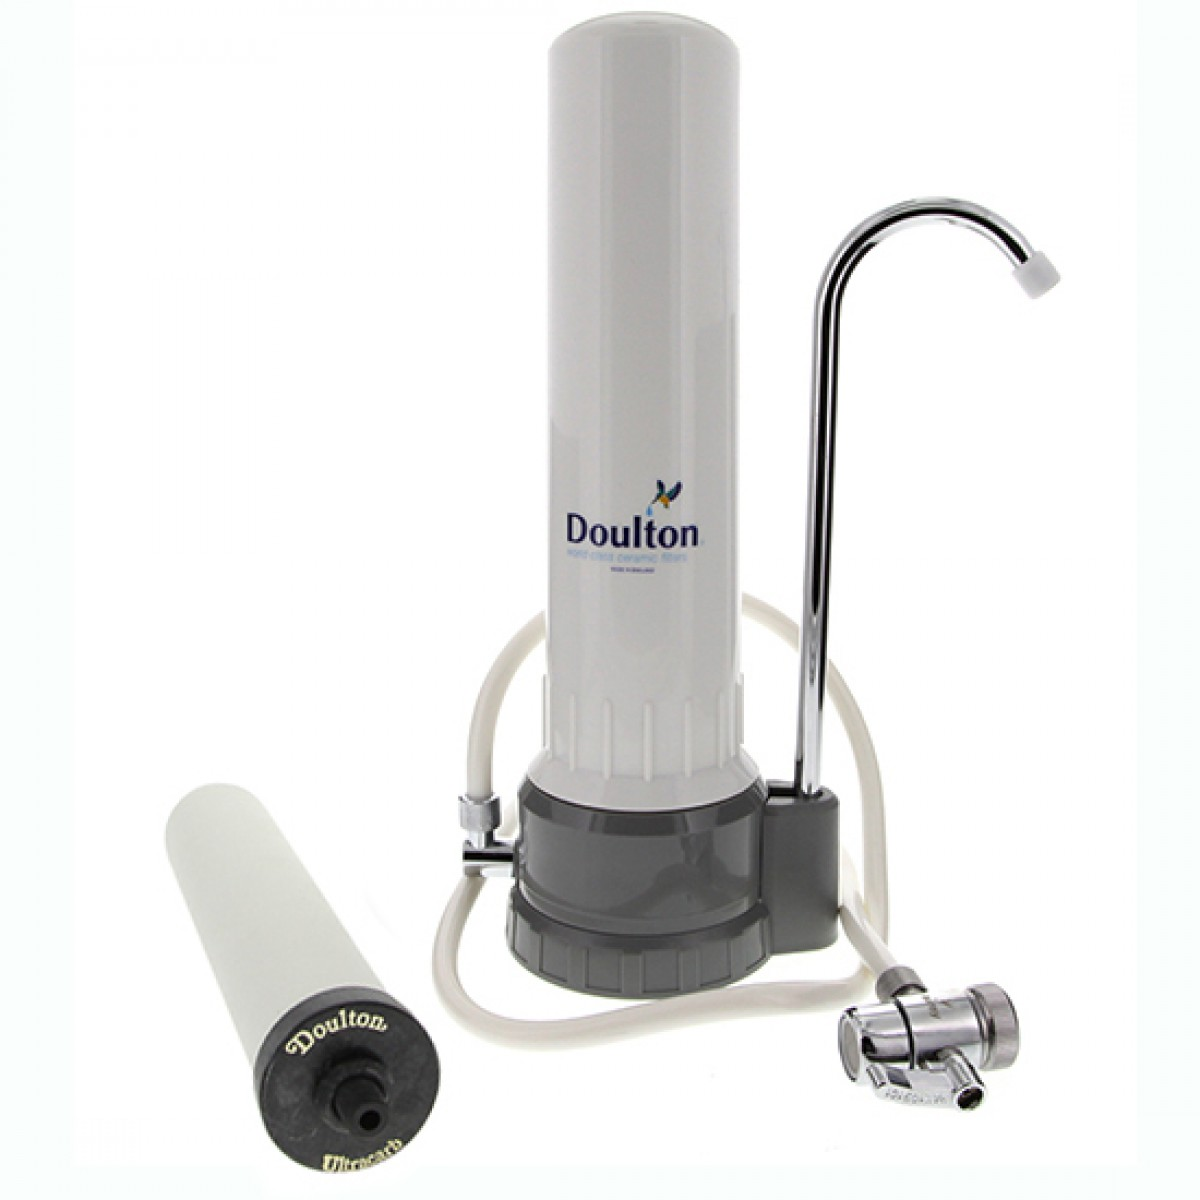 Doulton W9331032 Ultracarb Hcps Counter Top Water Filter